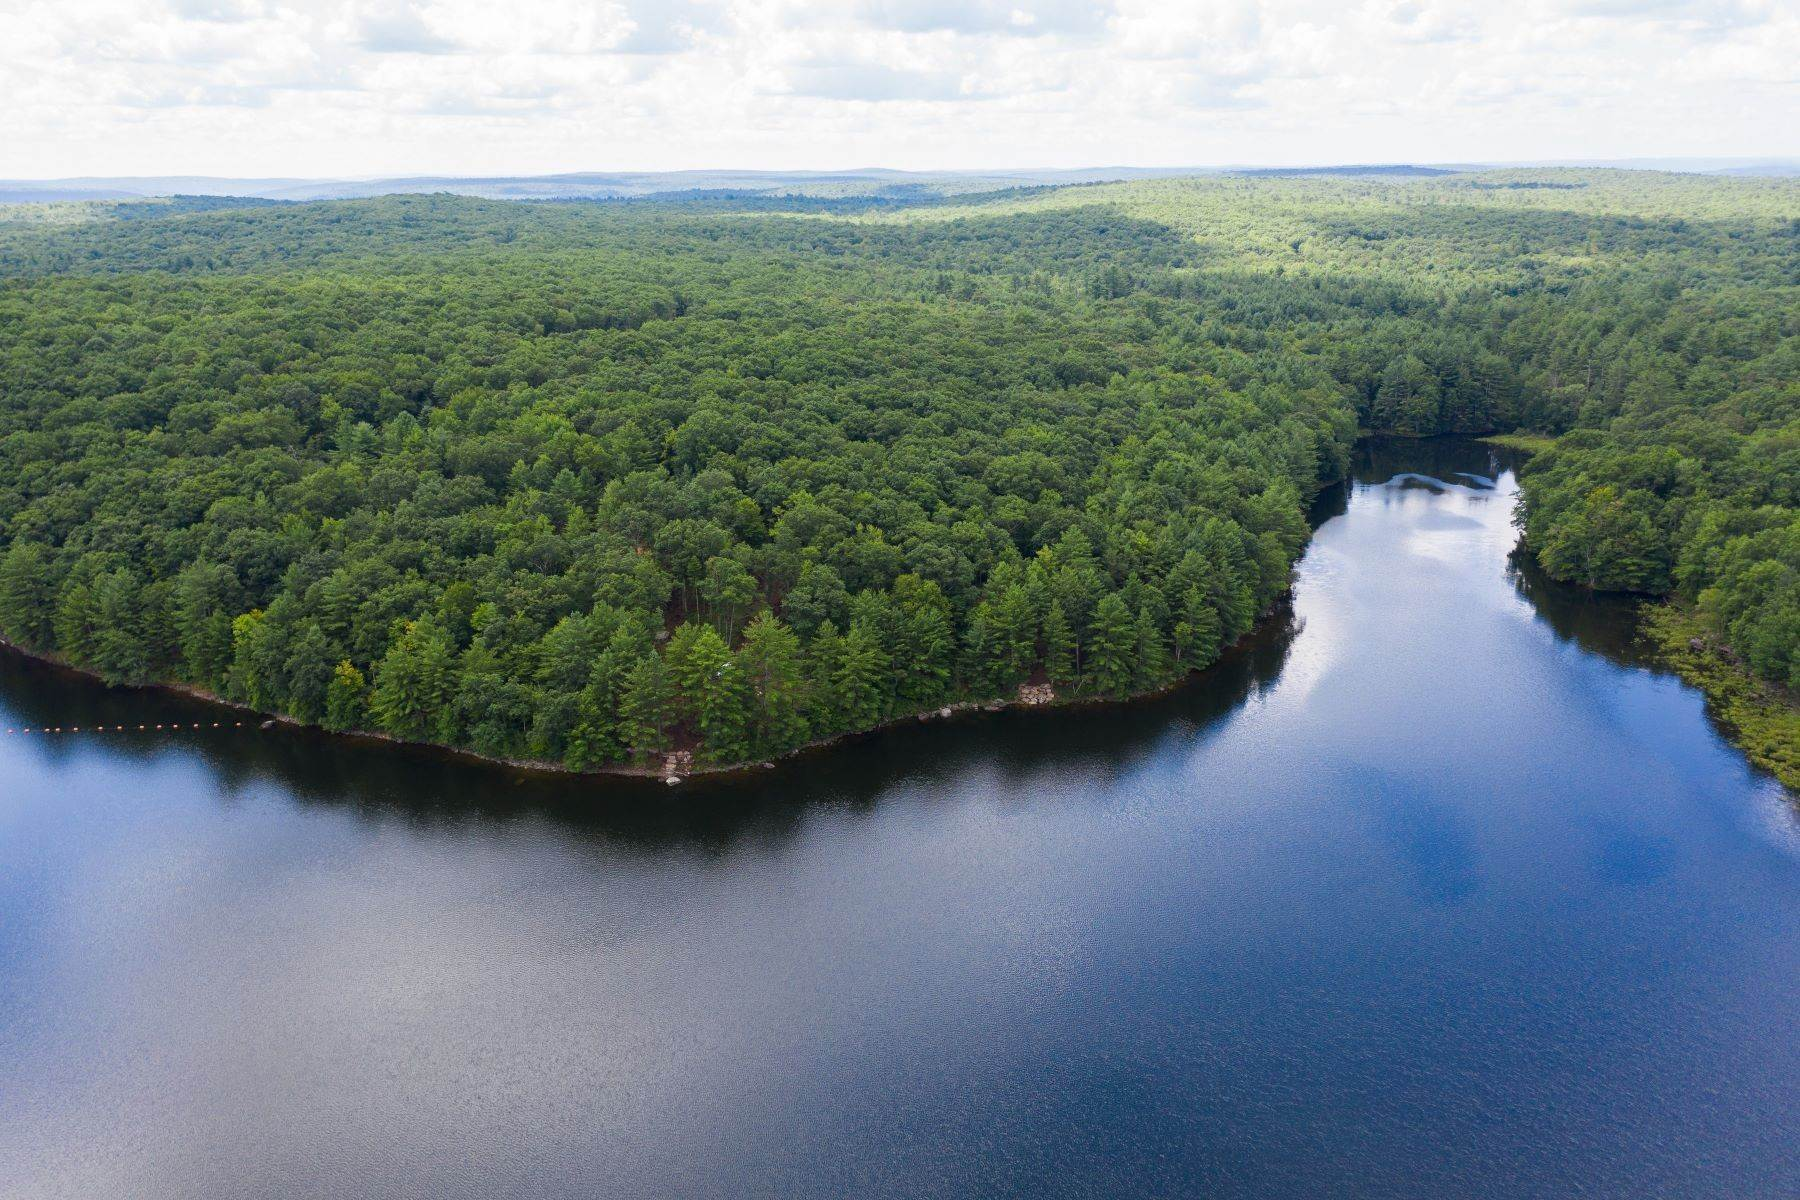 7. Land for Sale at Breathtaking home site on Toronto Reservoir Preserve VB Lot 155 Bethel, New York 12720 United States